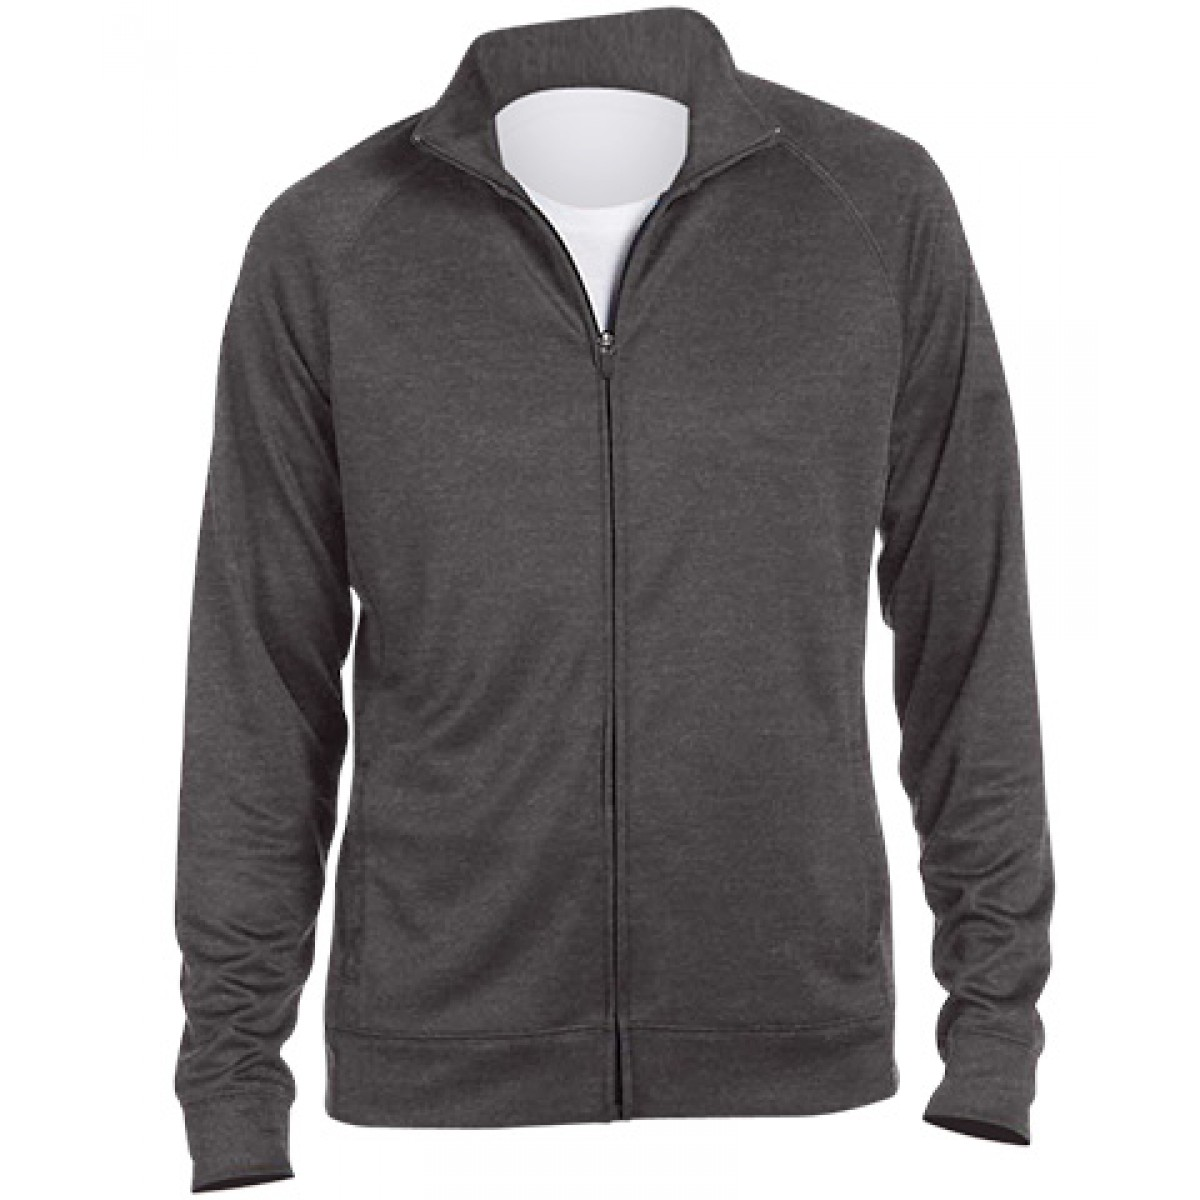 Men's Full Zip Lightweight Sports Jacket